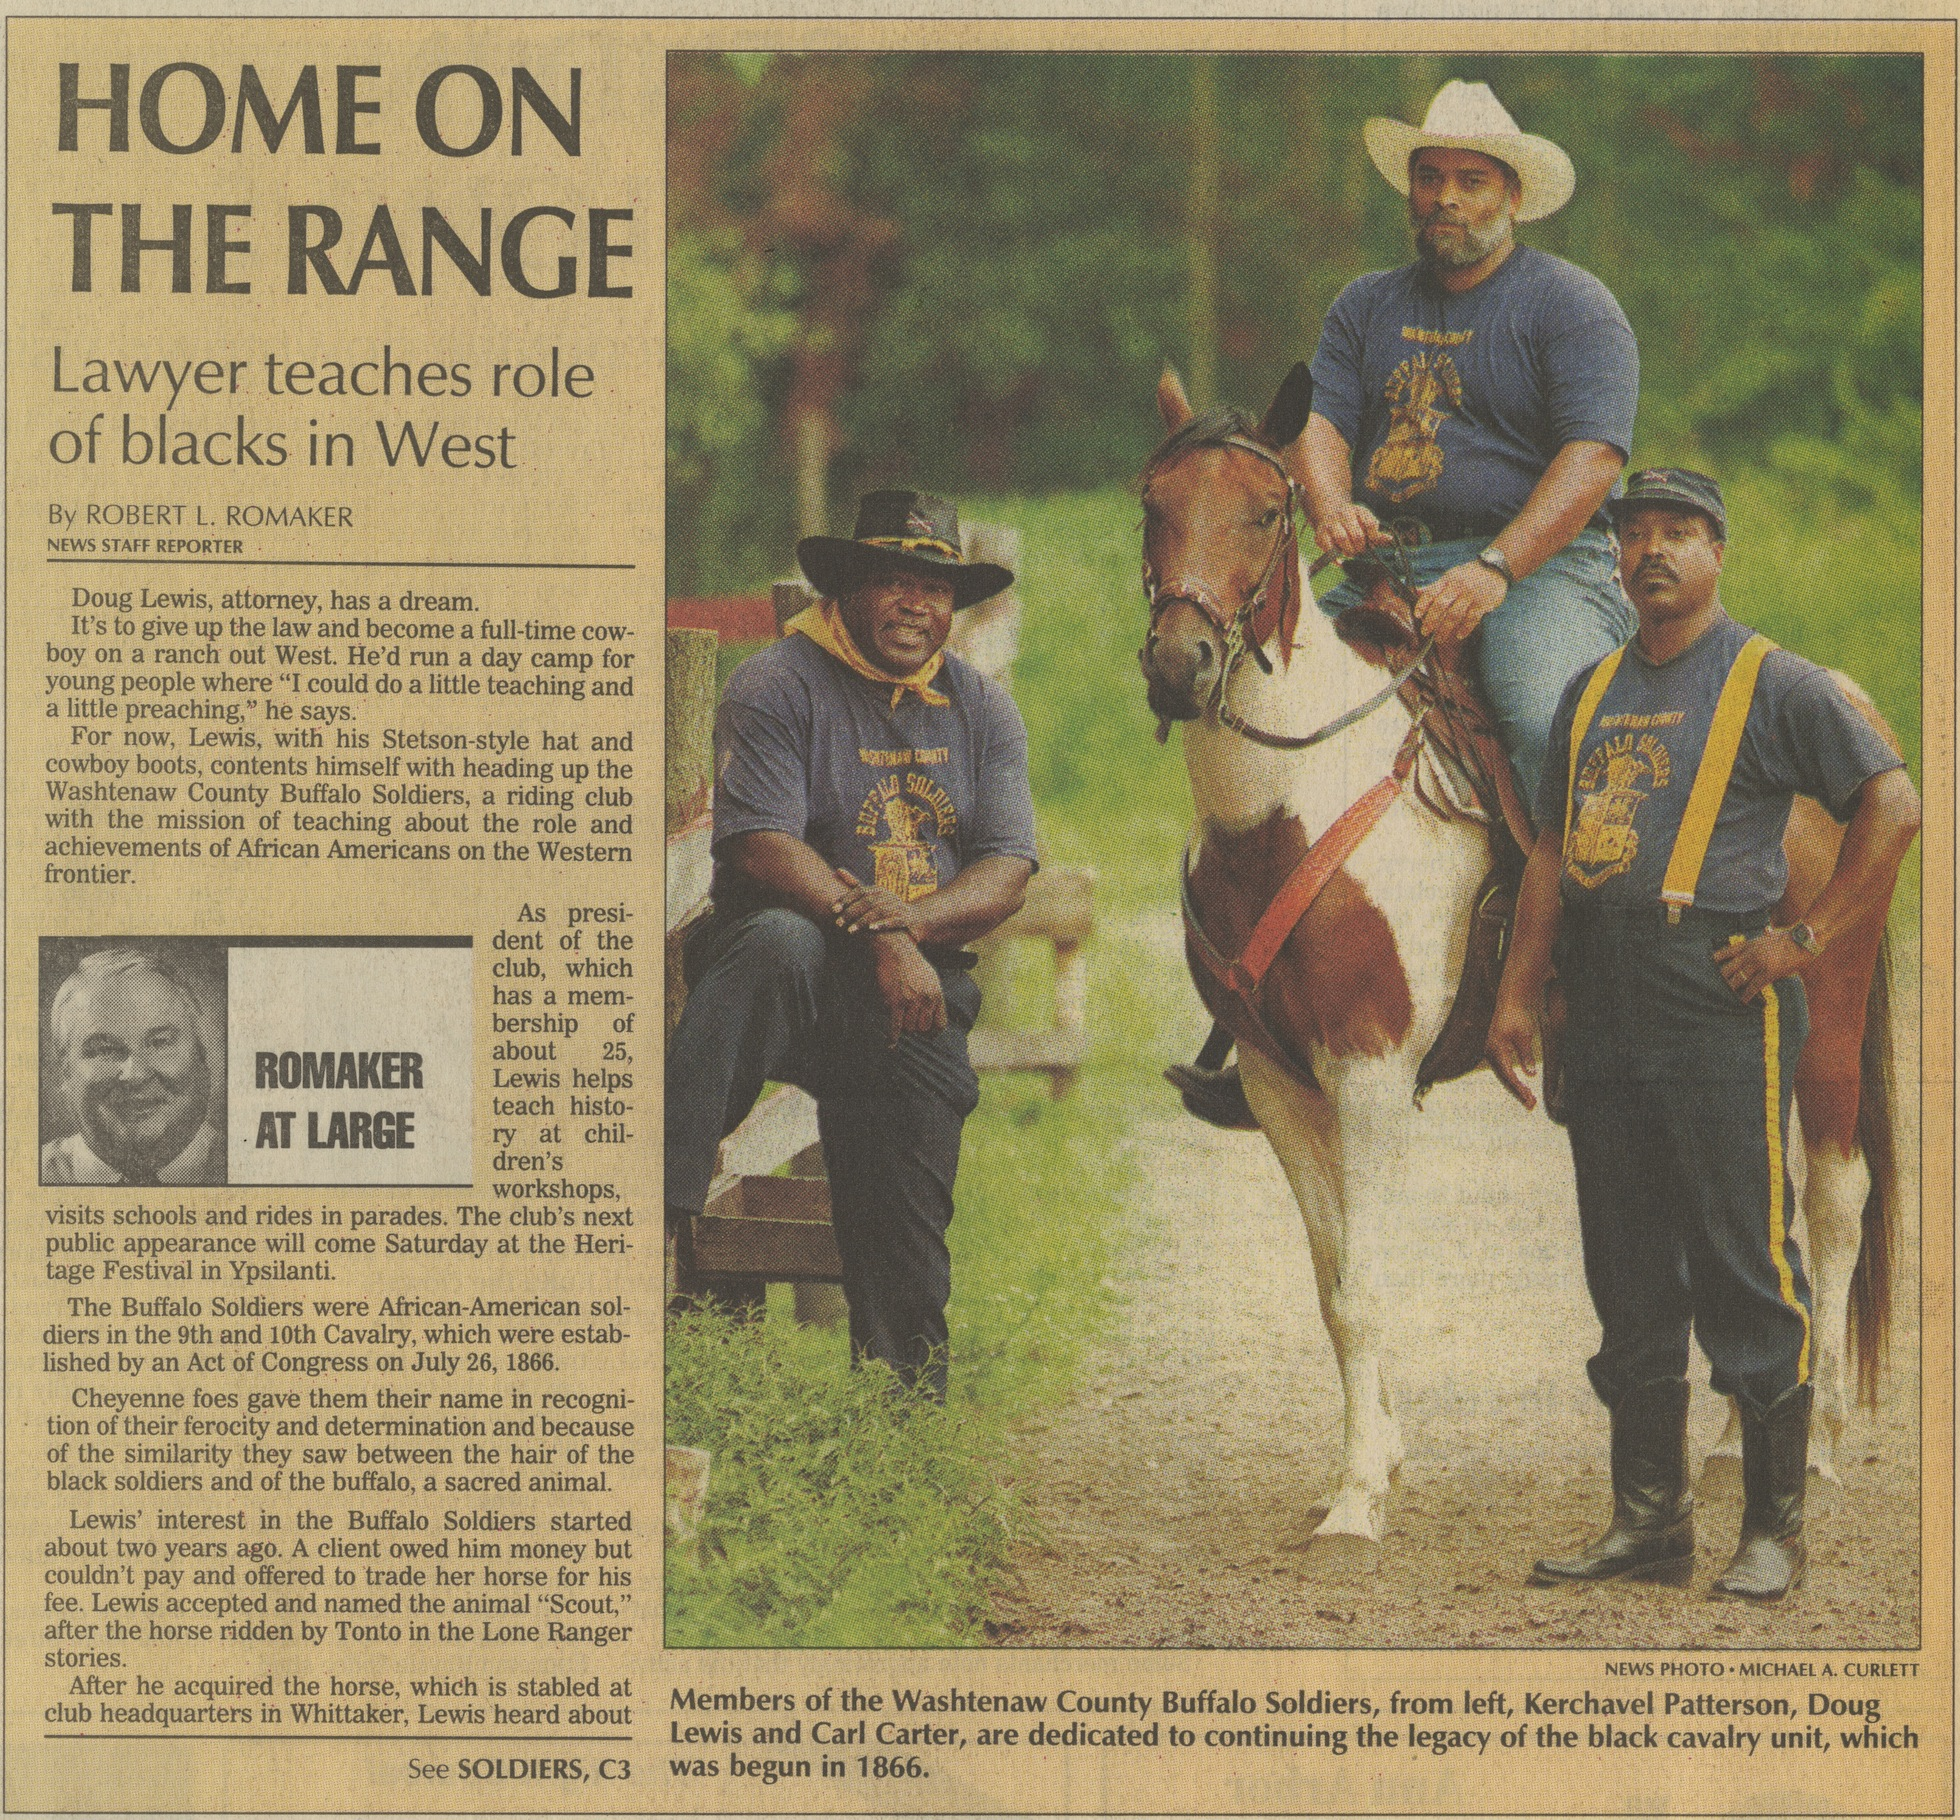 Home On The Range image